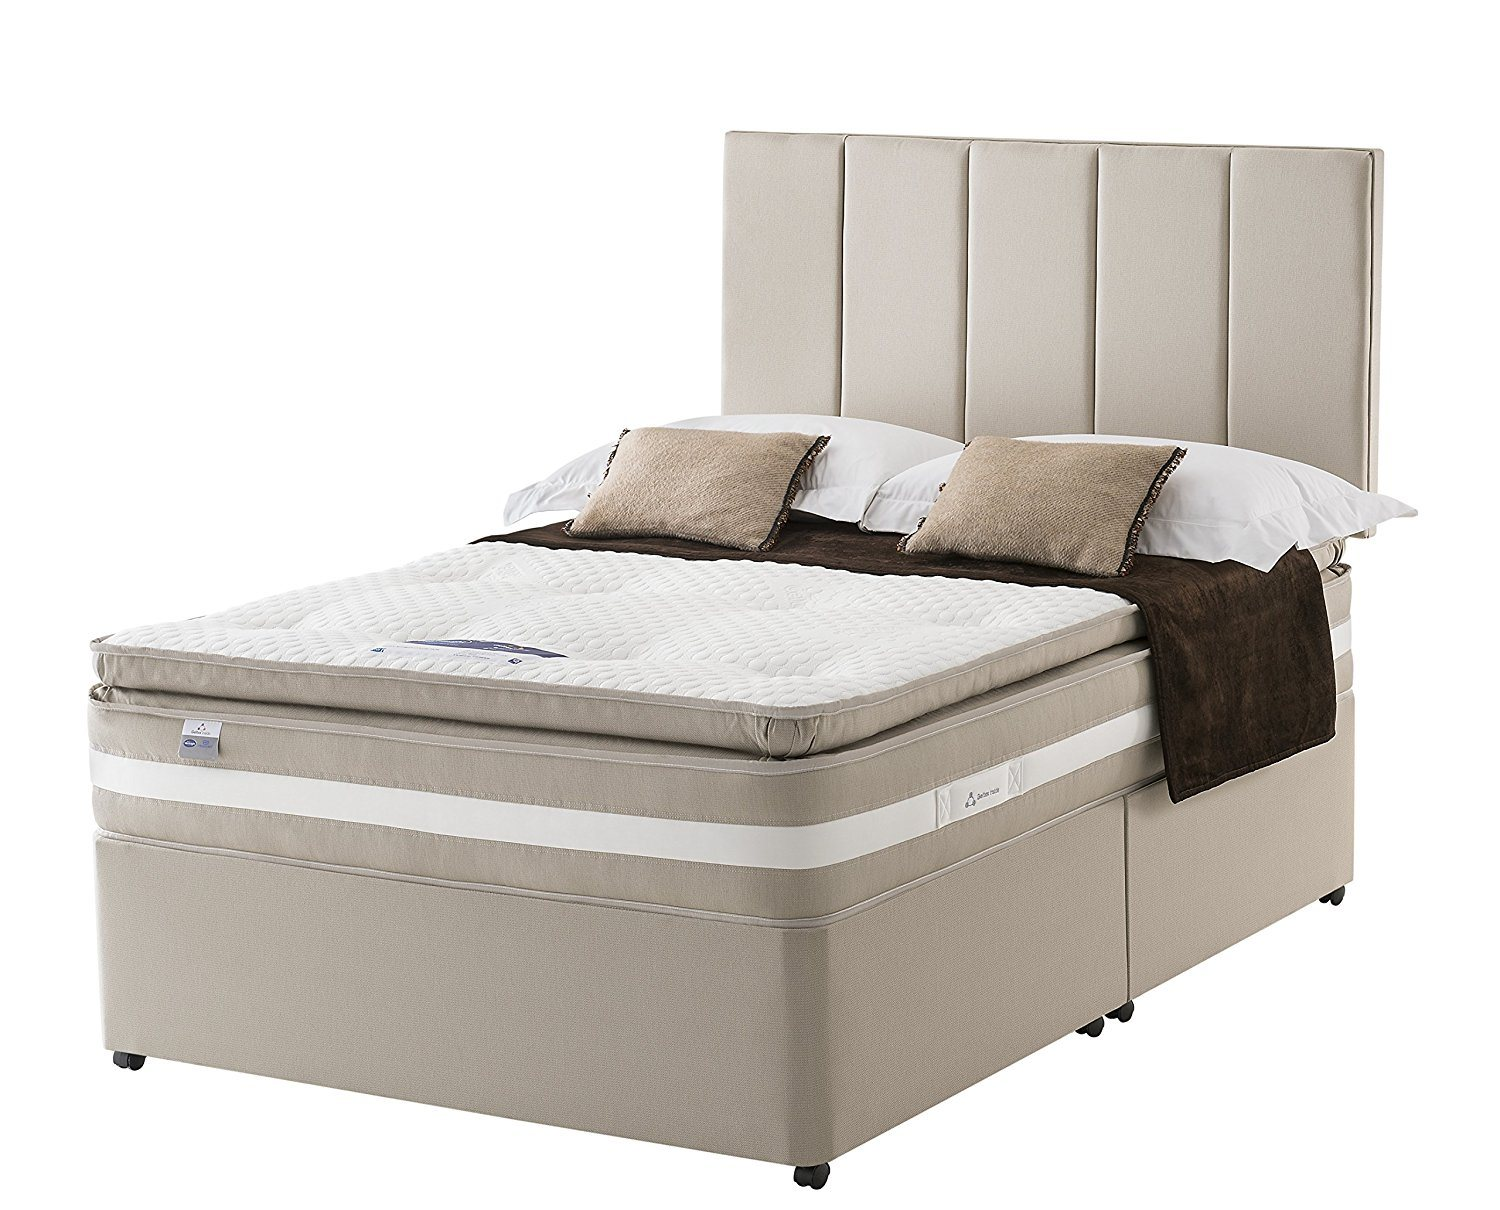 Silentnight 1850 Mattress Review